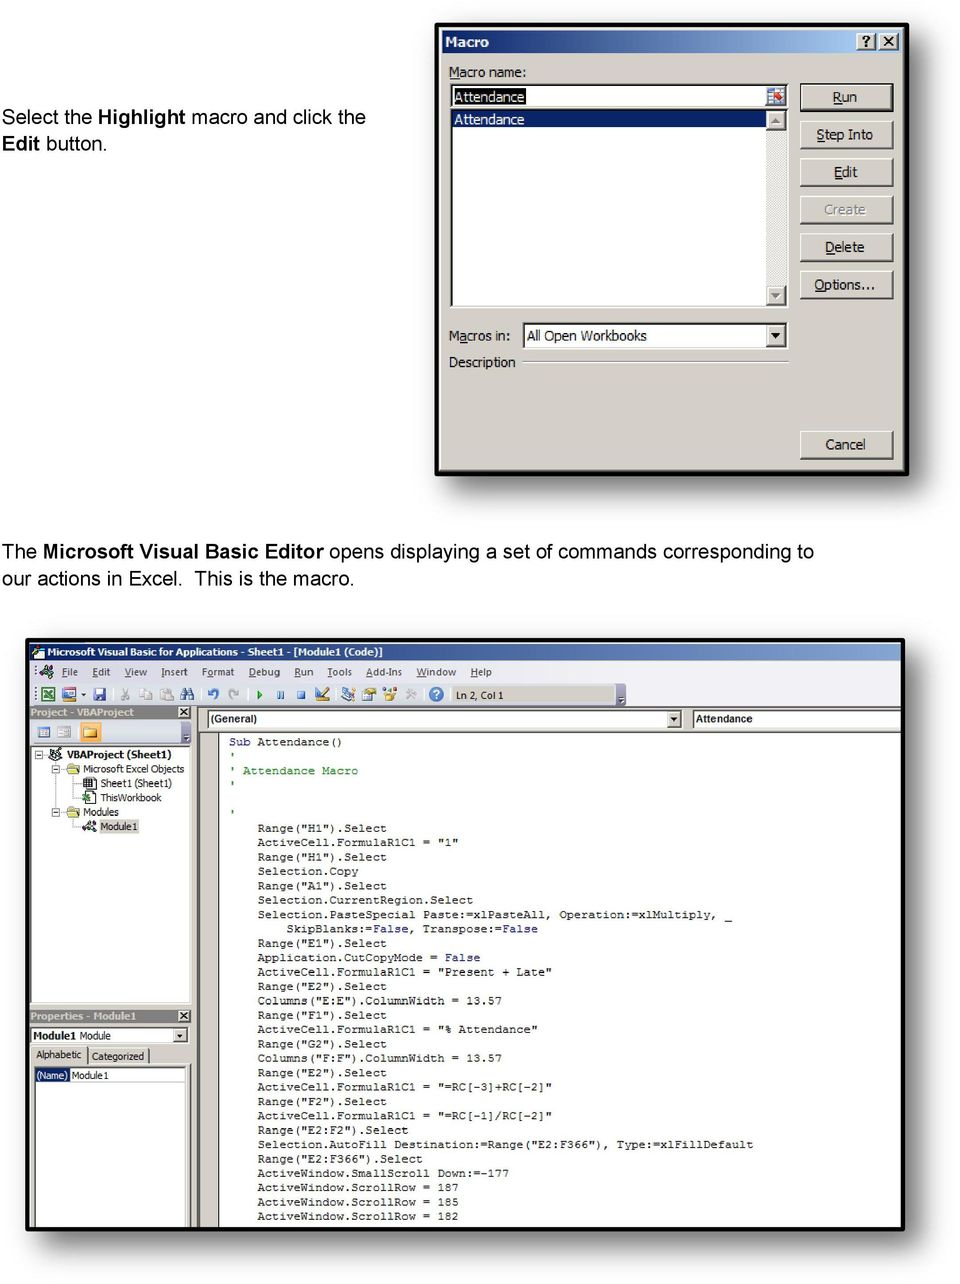 The Microsoft Visual Basic Editor opens